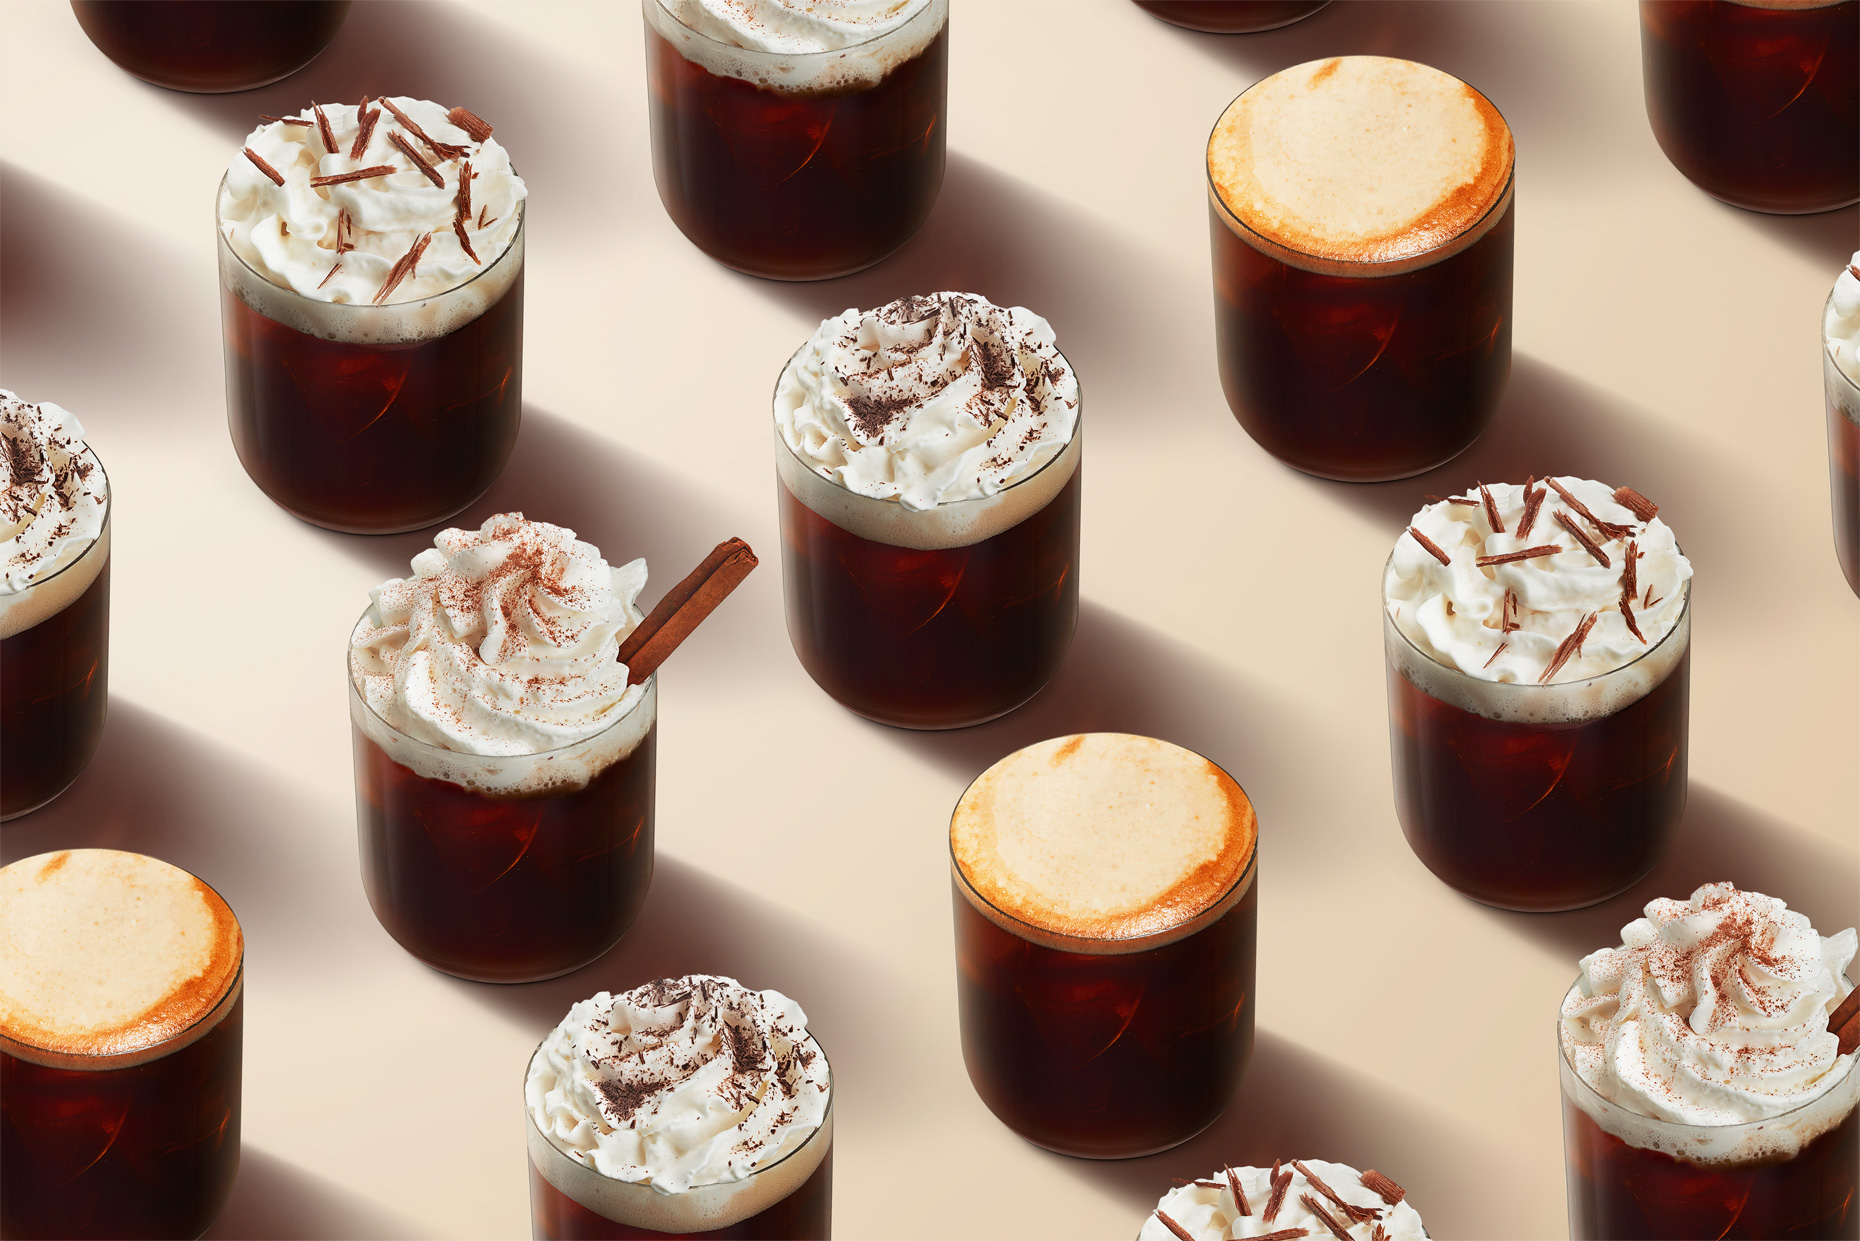 Four rows of hot and iced coffees, by Food and Beverage photographer New York Adrian Mueller